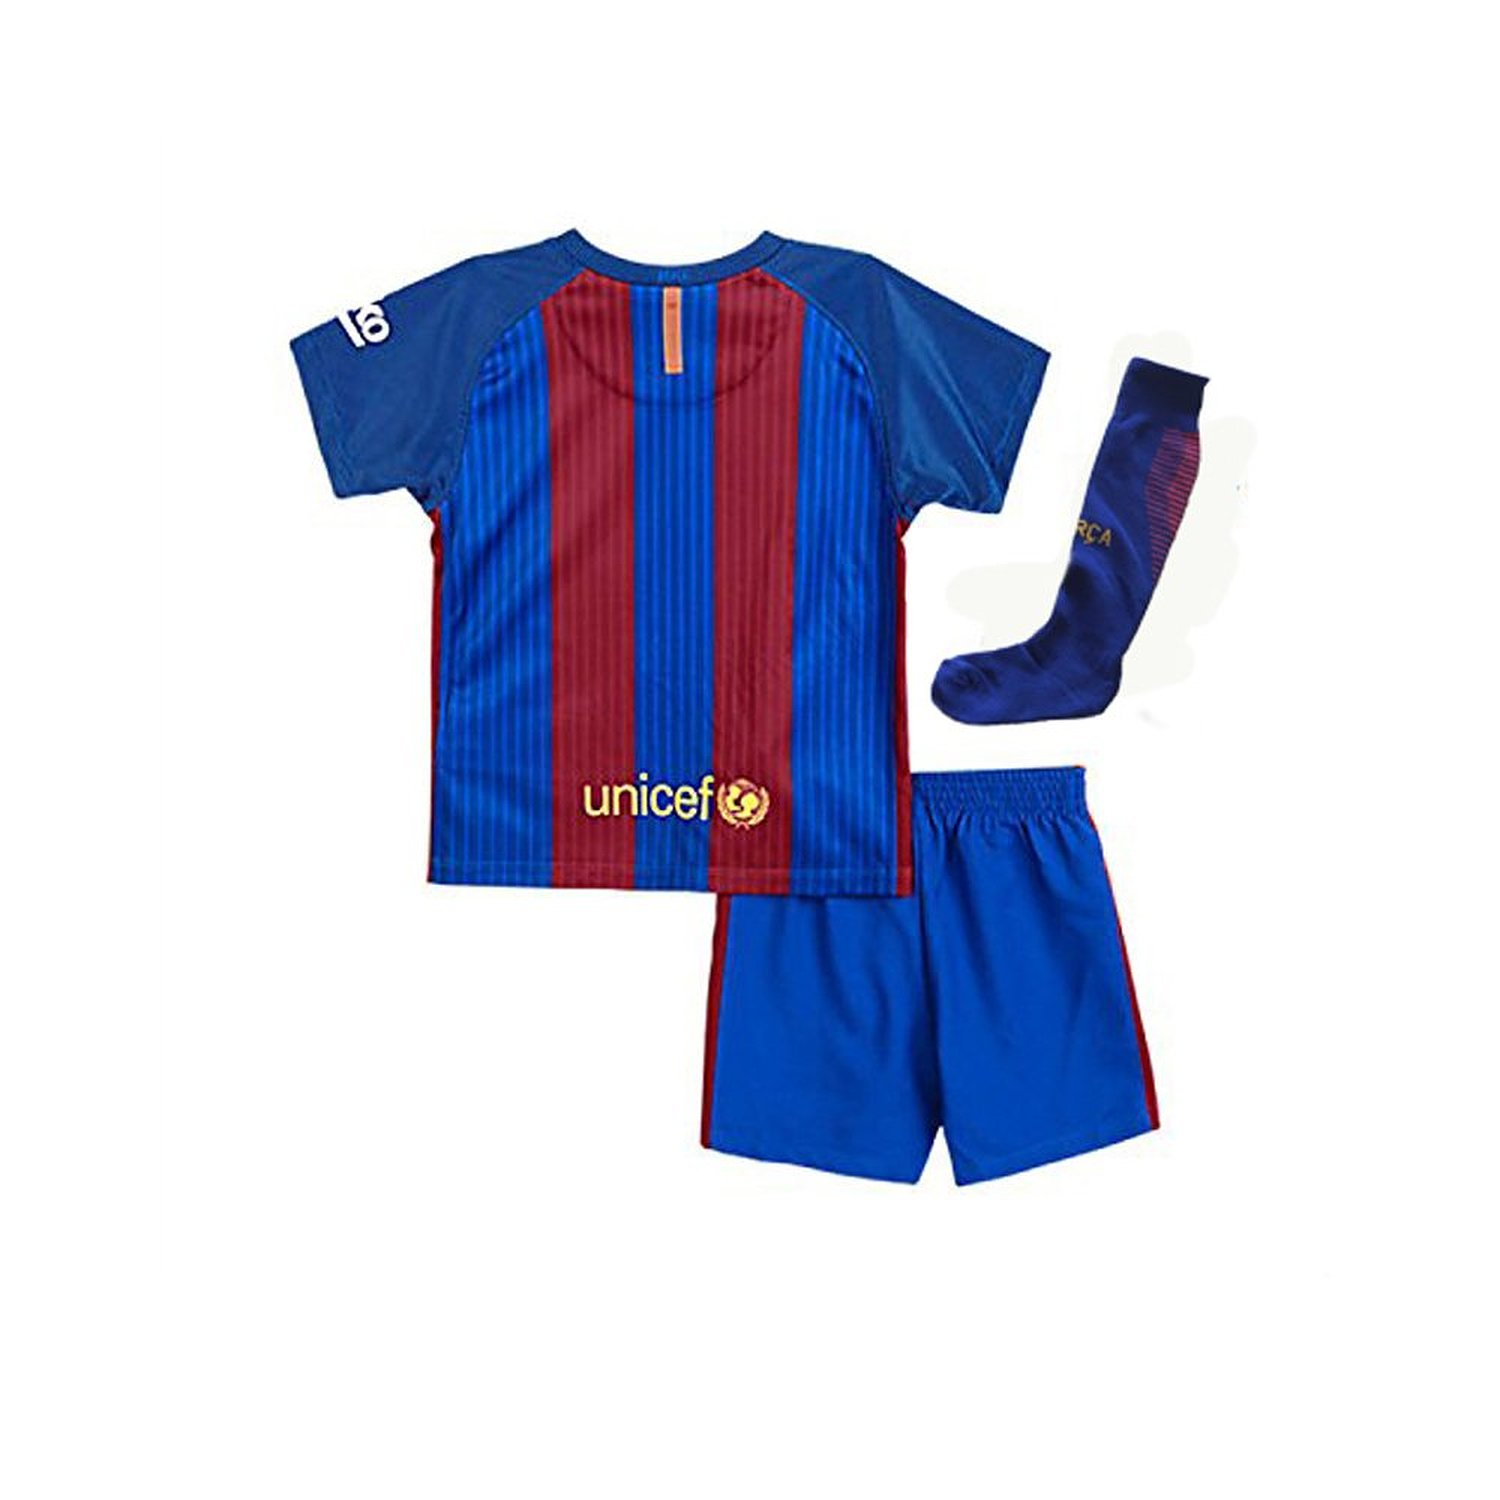 check out 7031c 2ac31 Cheap Messi Uniform For Kids, find Messi Uniform For Kids ...